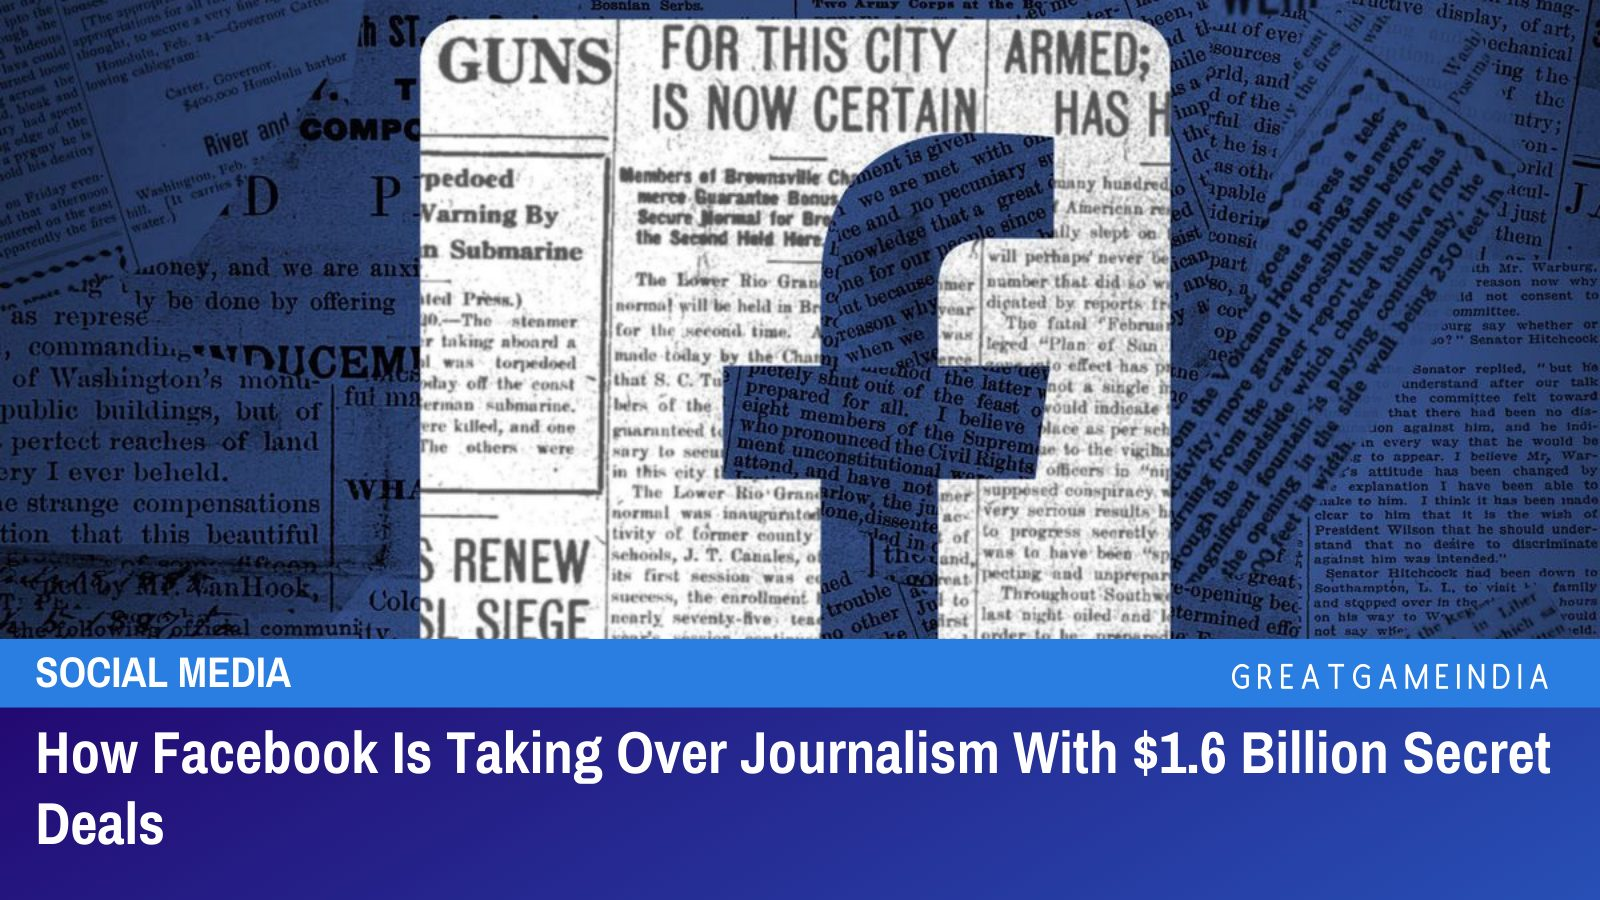 how-facebook-is-taking-over-journalism-with-$1.6-billion-secret-deals-|-greatgameindia